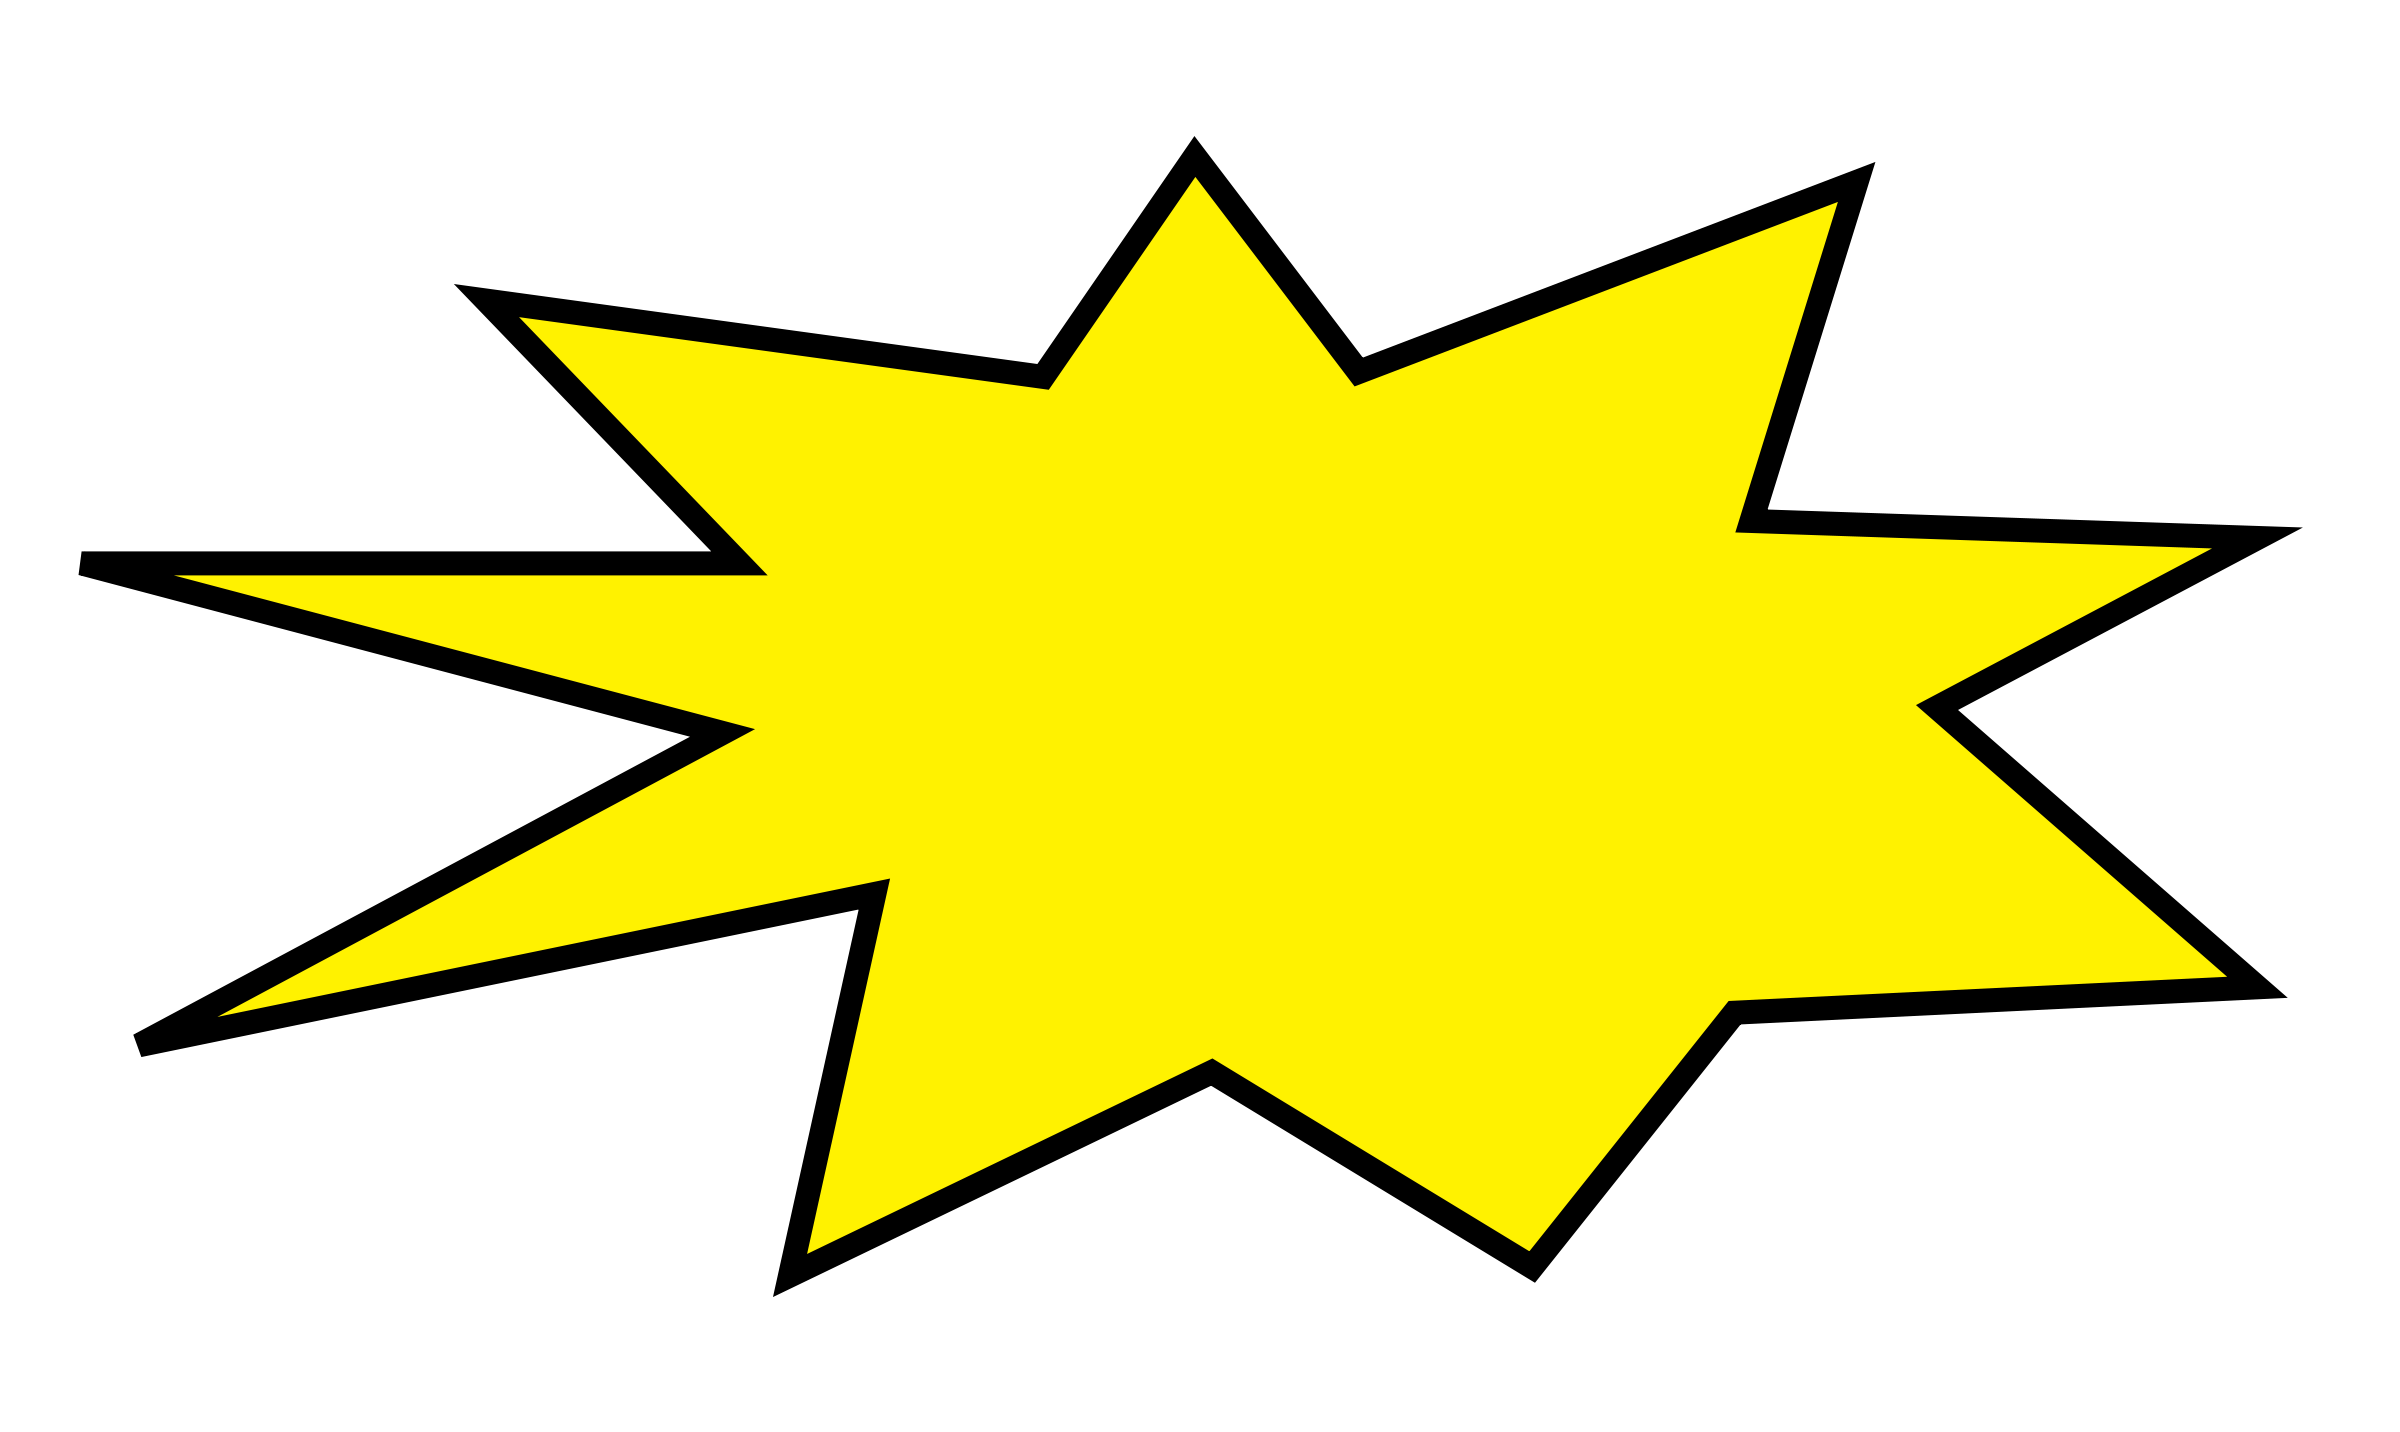 Exploding star clipart.  collection of explosion